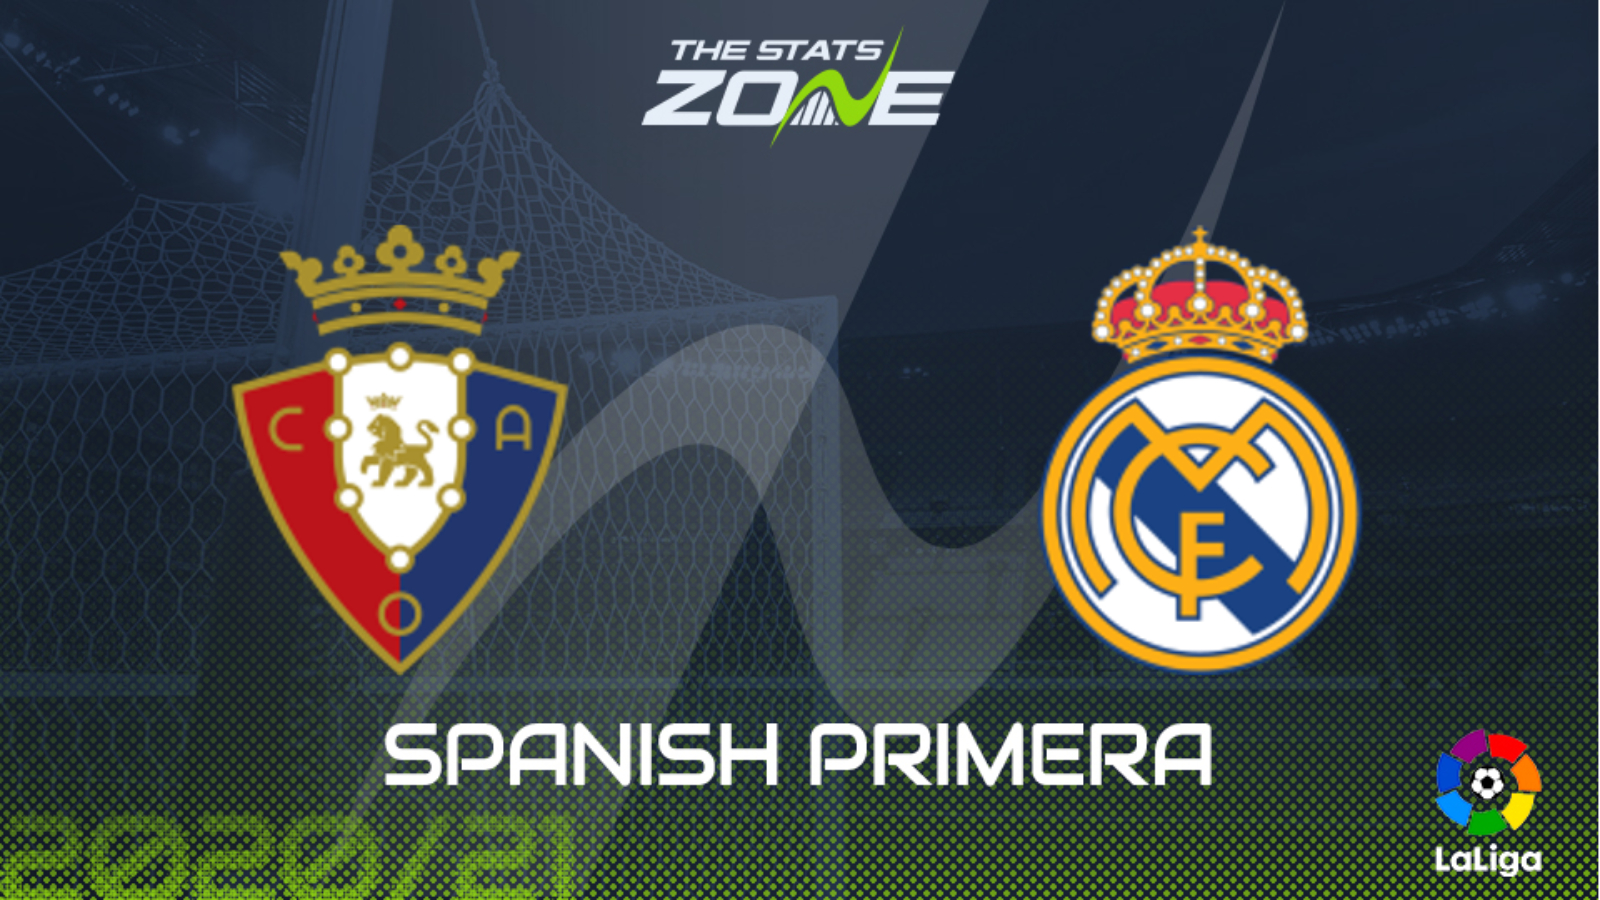 Osasuna real madrid betting preview us political betting